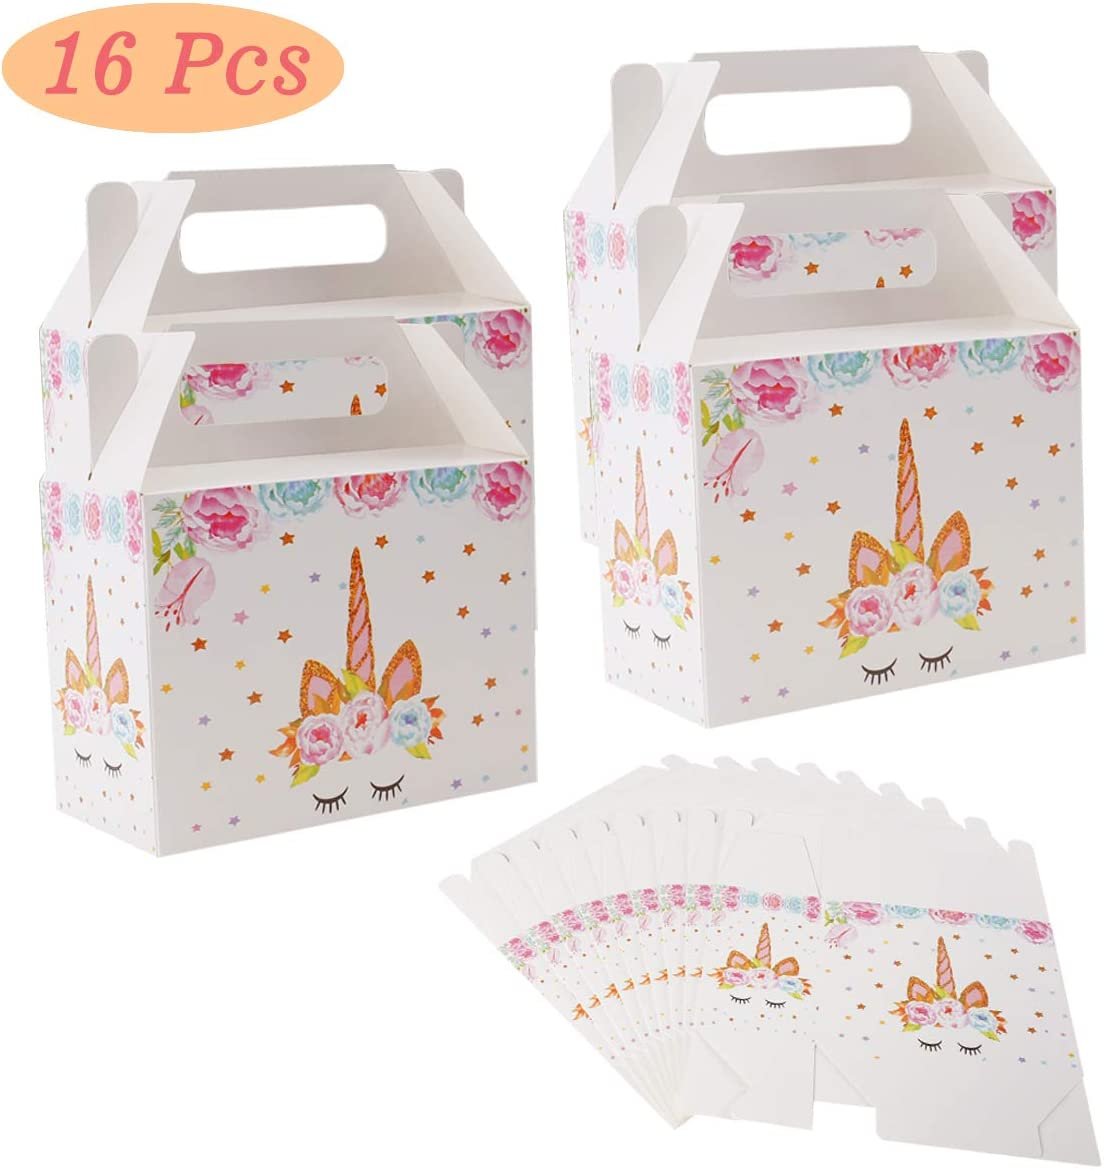 Unicorn Party Favor Boxes for 16 Guests